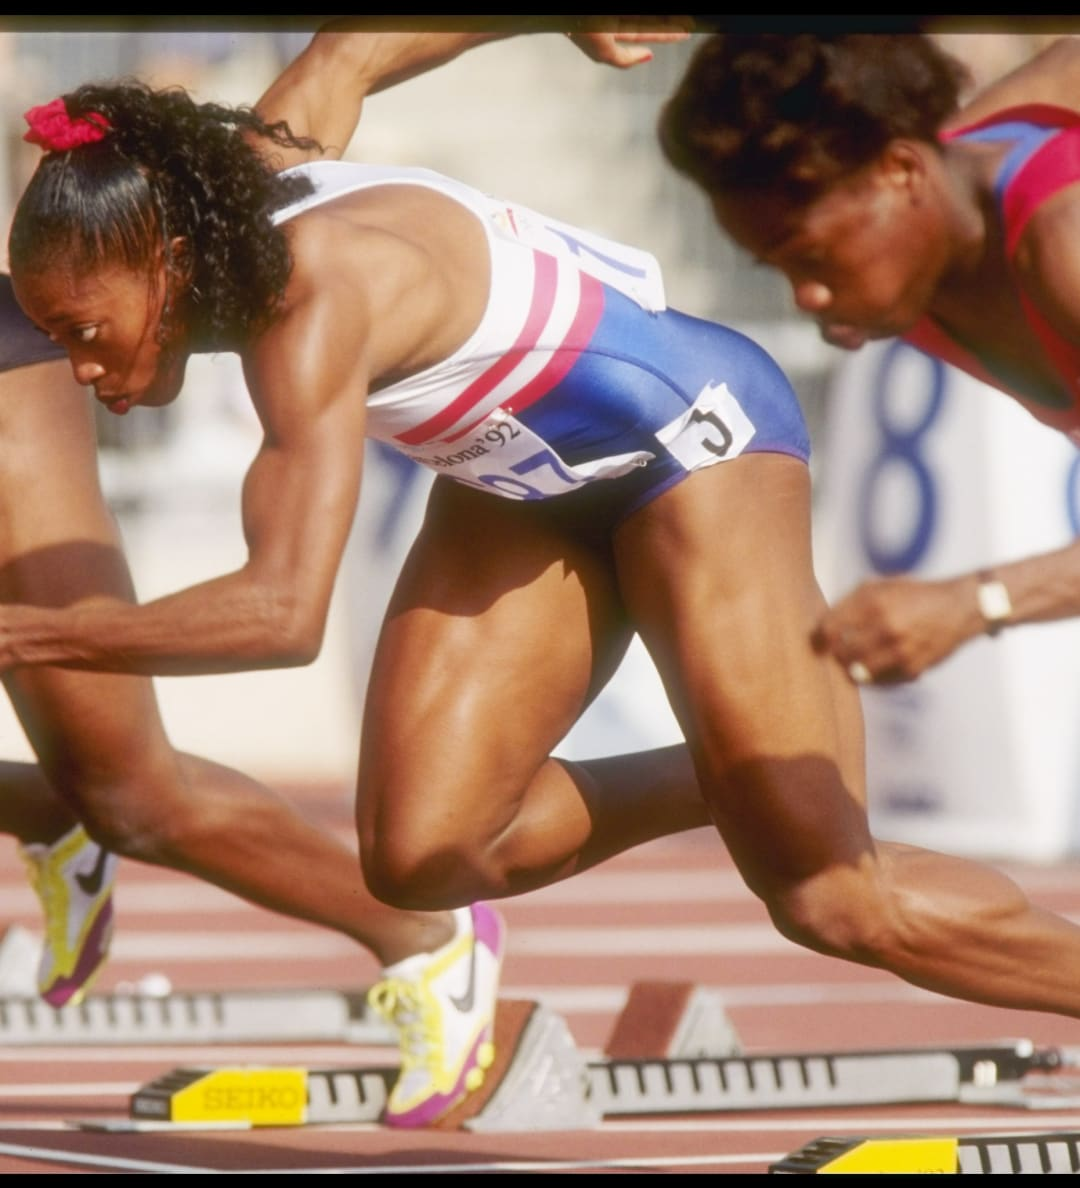 Great Olympic moments - Barcelona 1992 Women's 100m Final